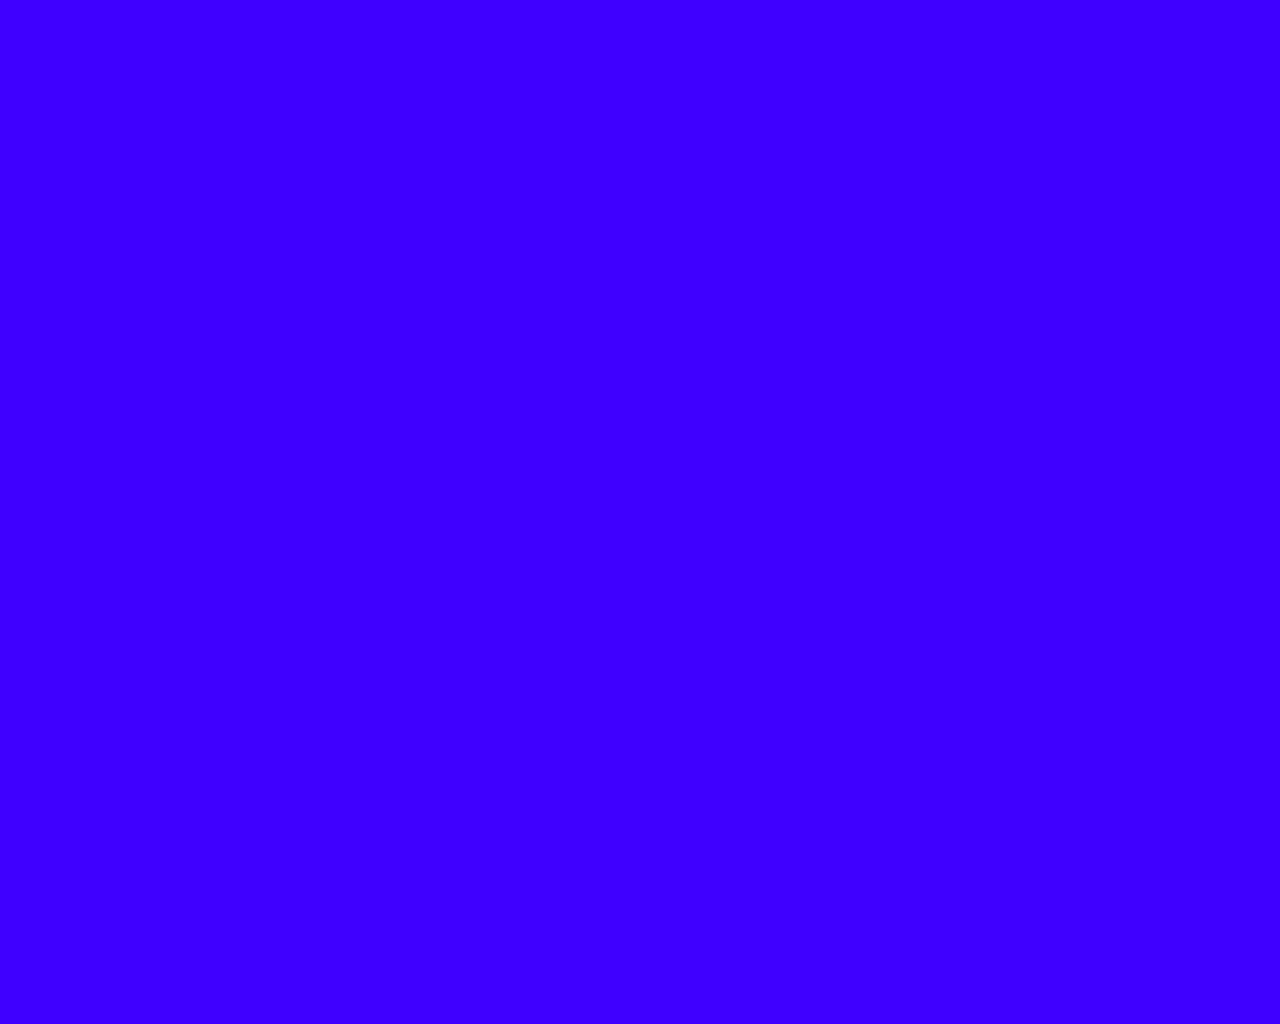 1280x1024 Electric Ultramarine Solid Color Background